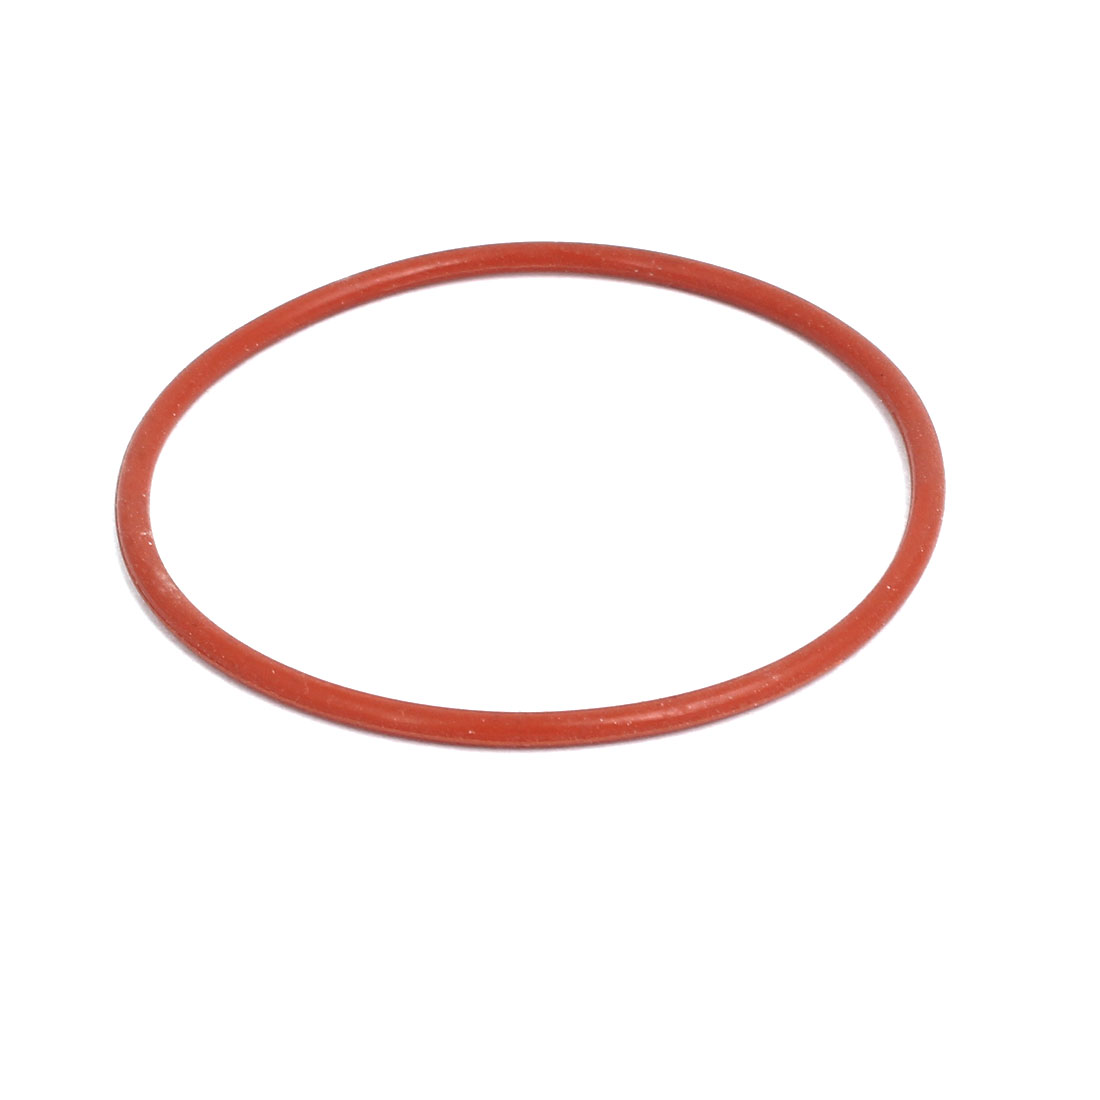 Plastic O-Ring Valve Gasket Red for 280W Air Compressor